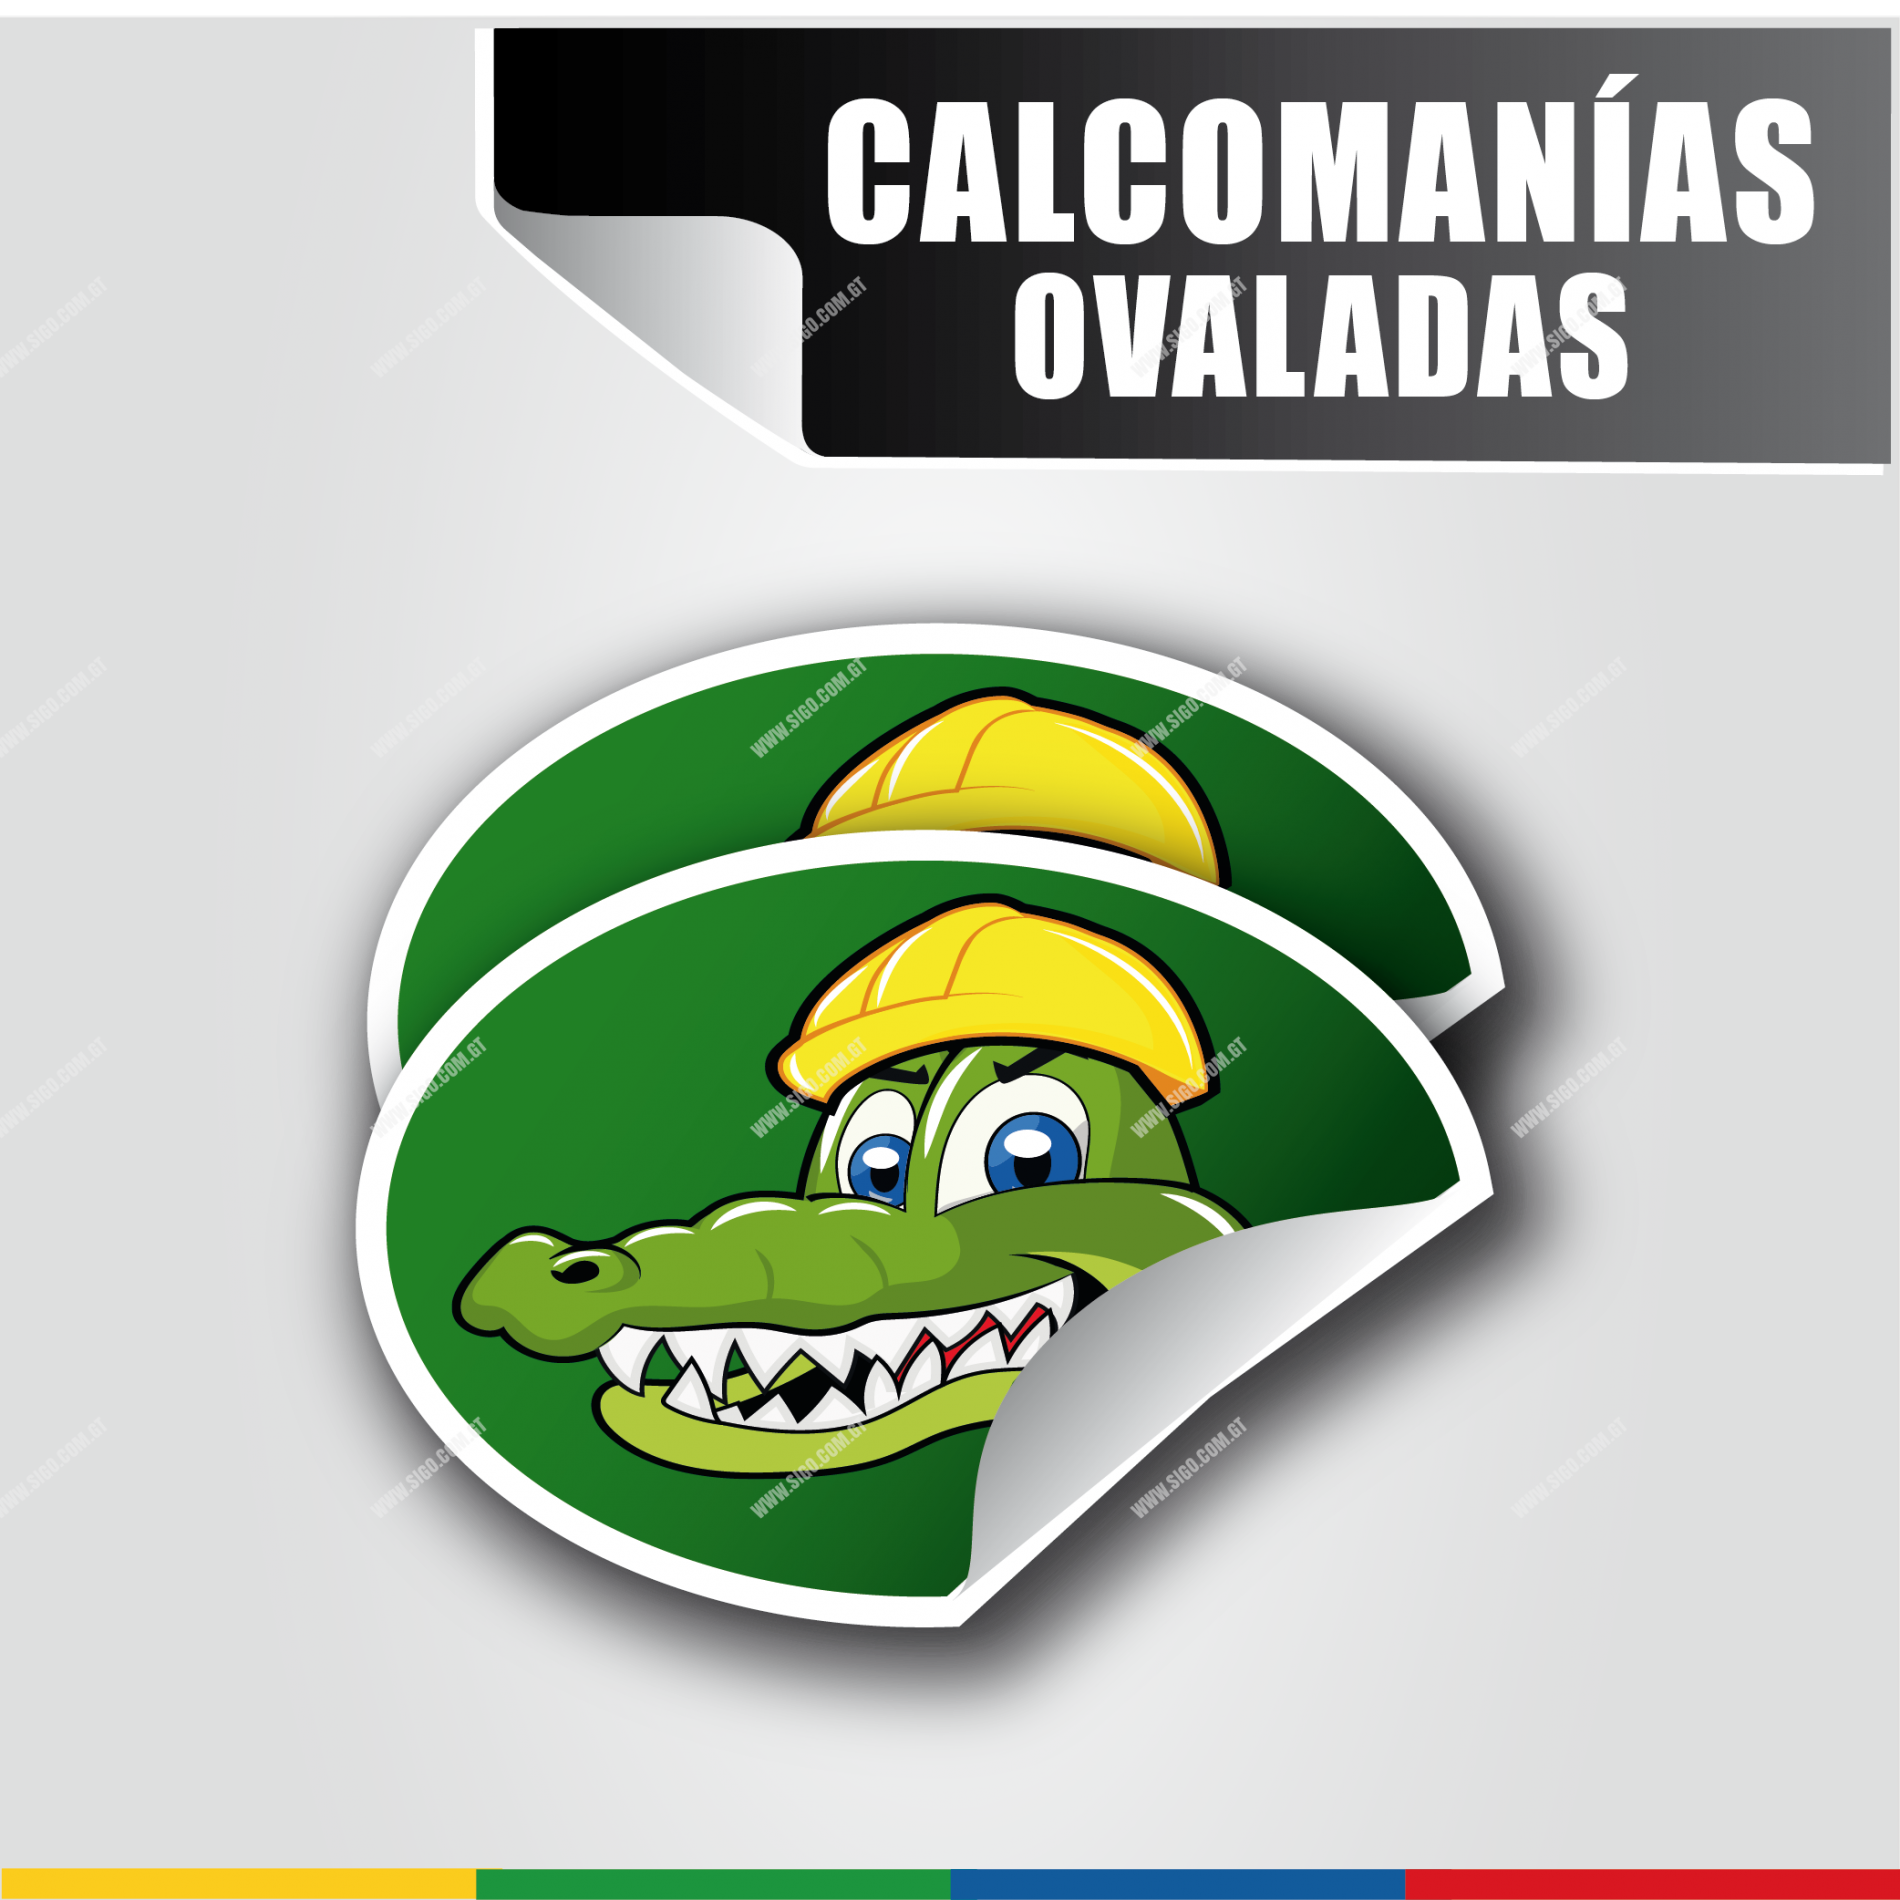 Calcomanias Ovaladas